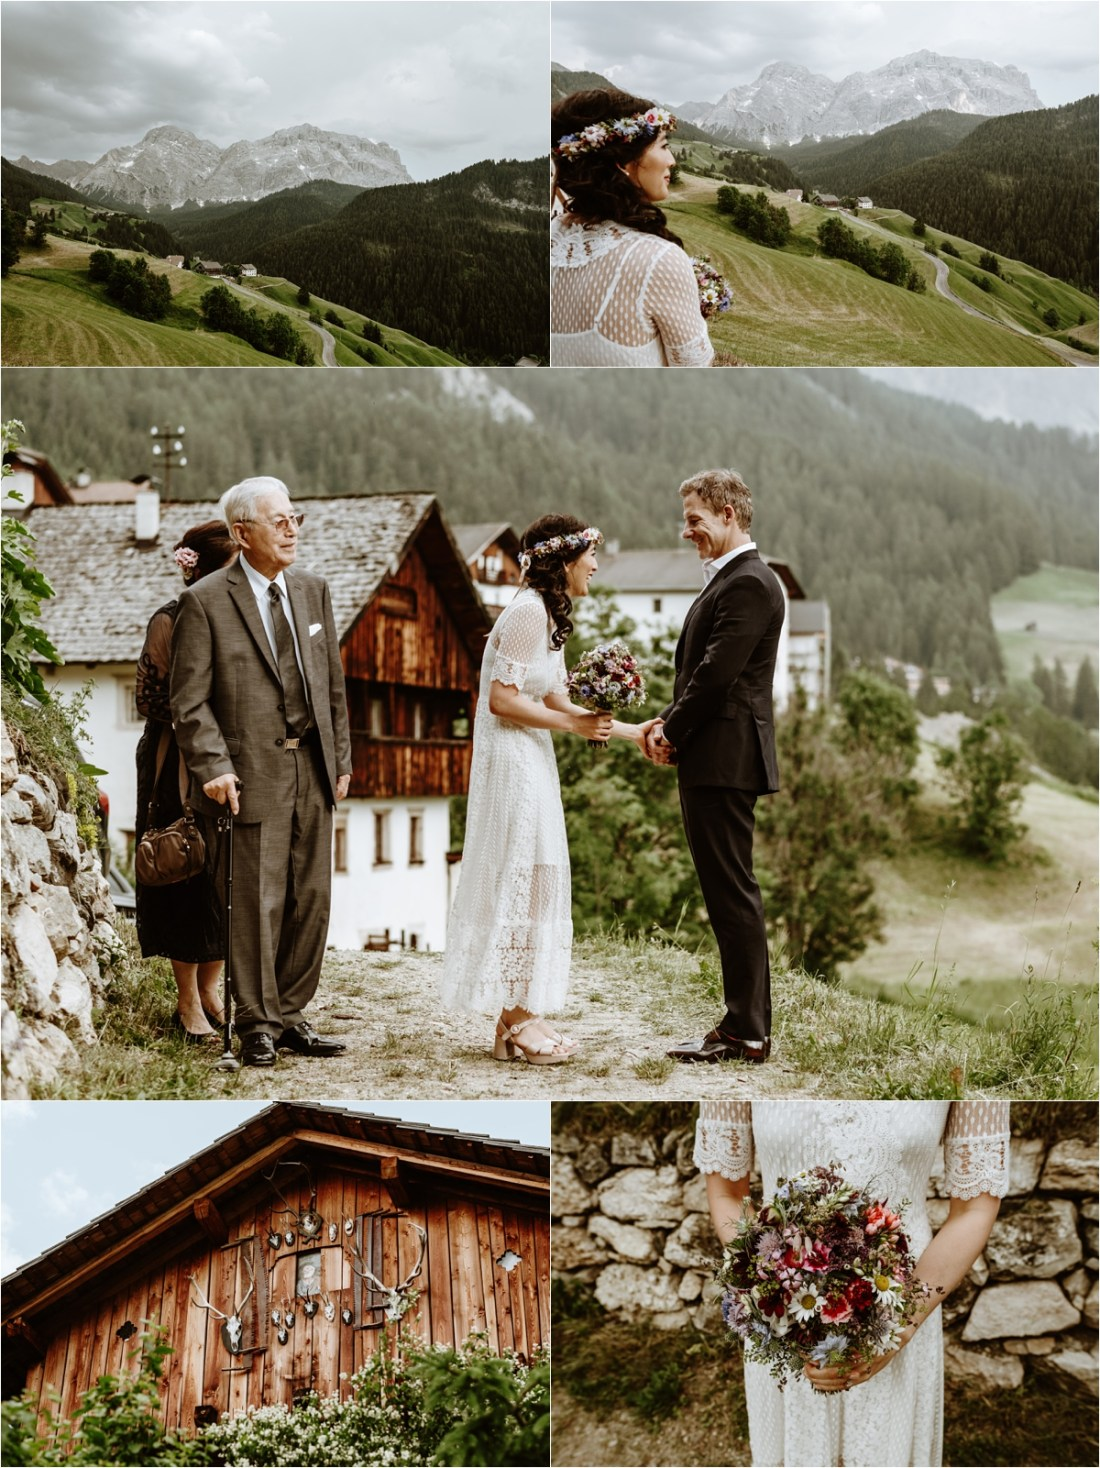 The bride and groom arrive at their intimate ceremony location in the Dolomites. Photo by Wild Connections Photography